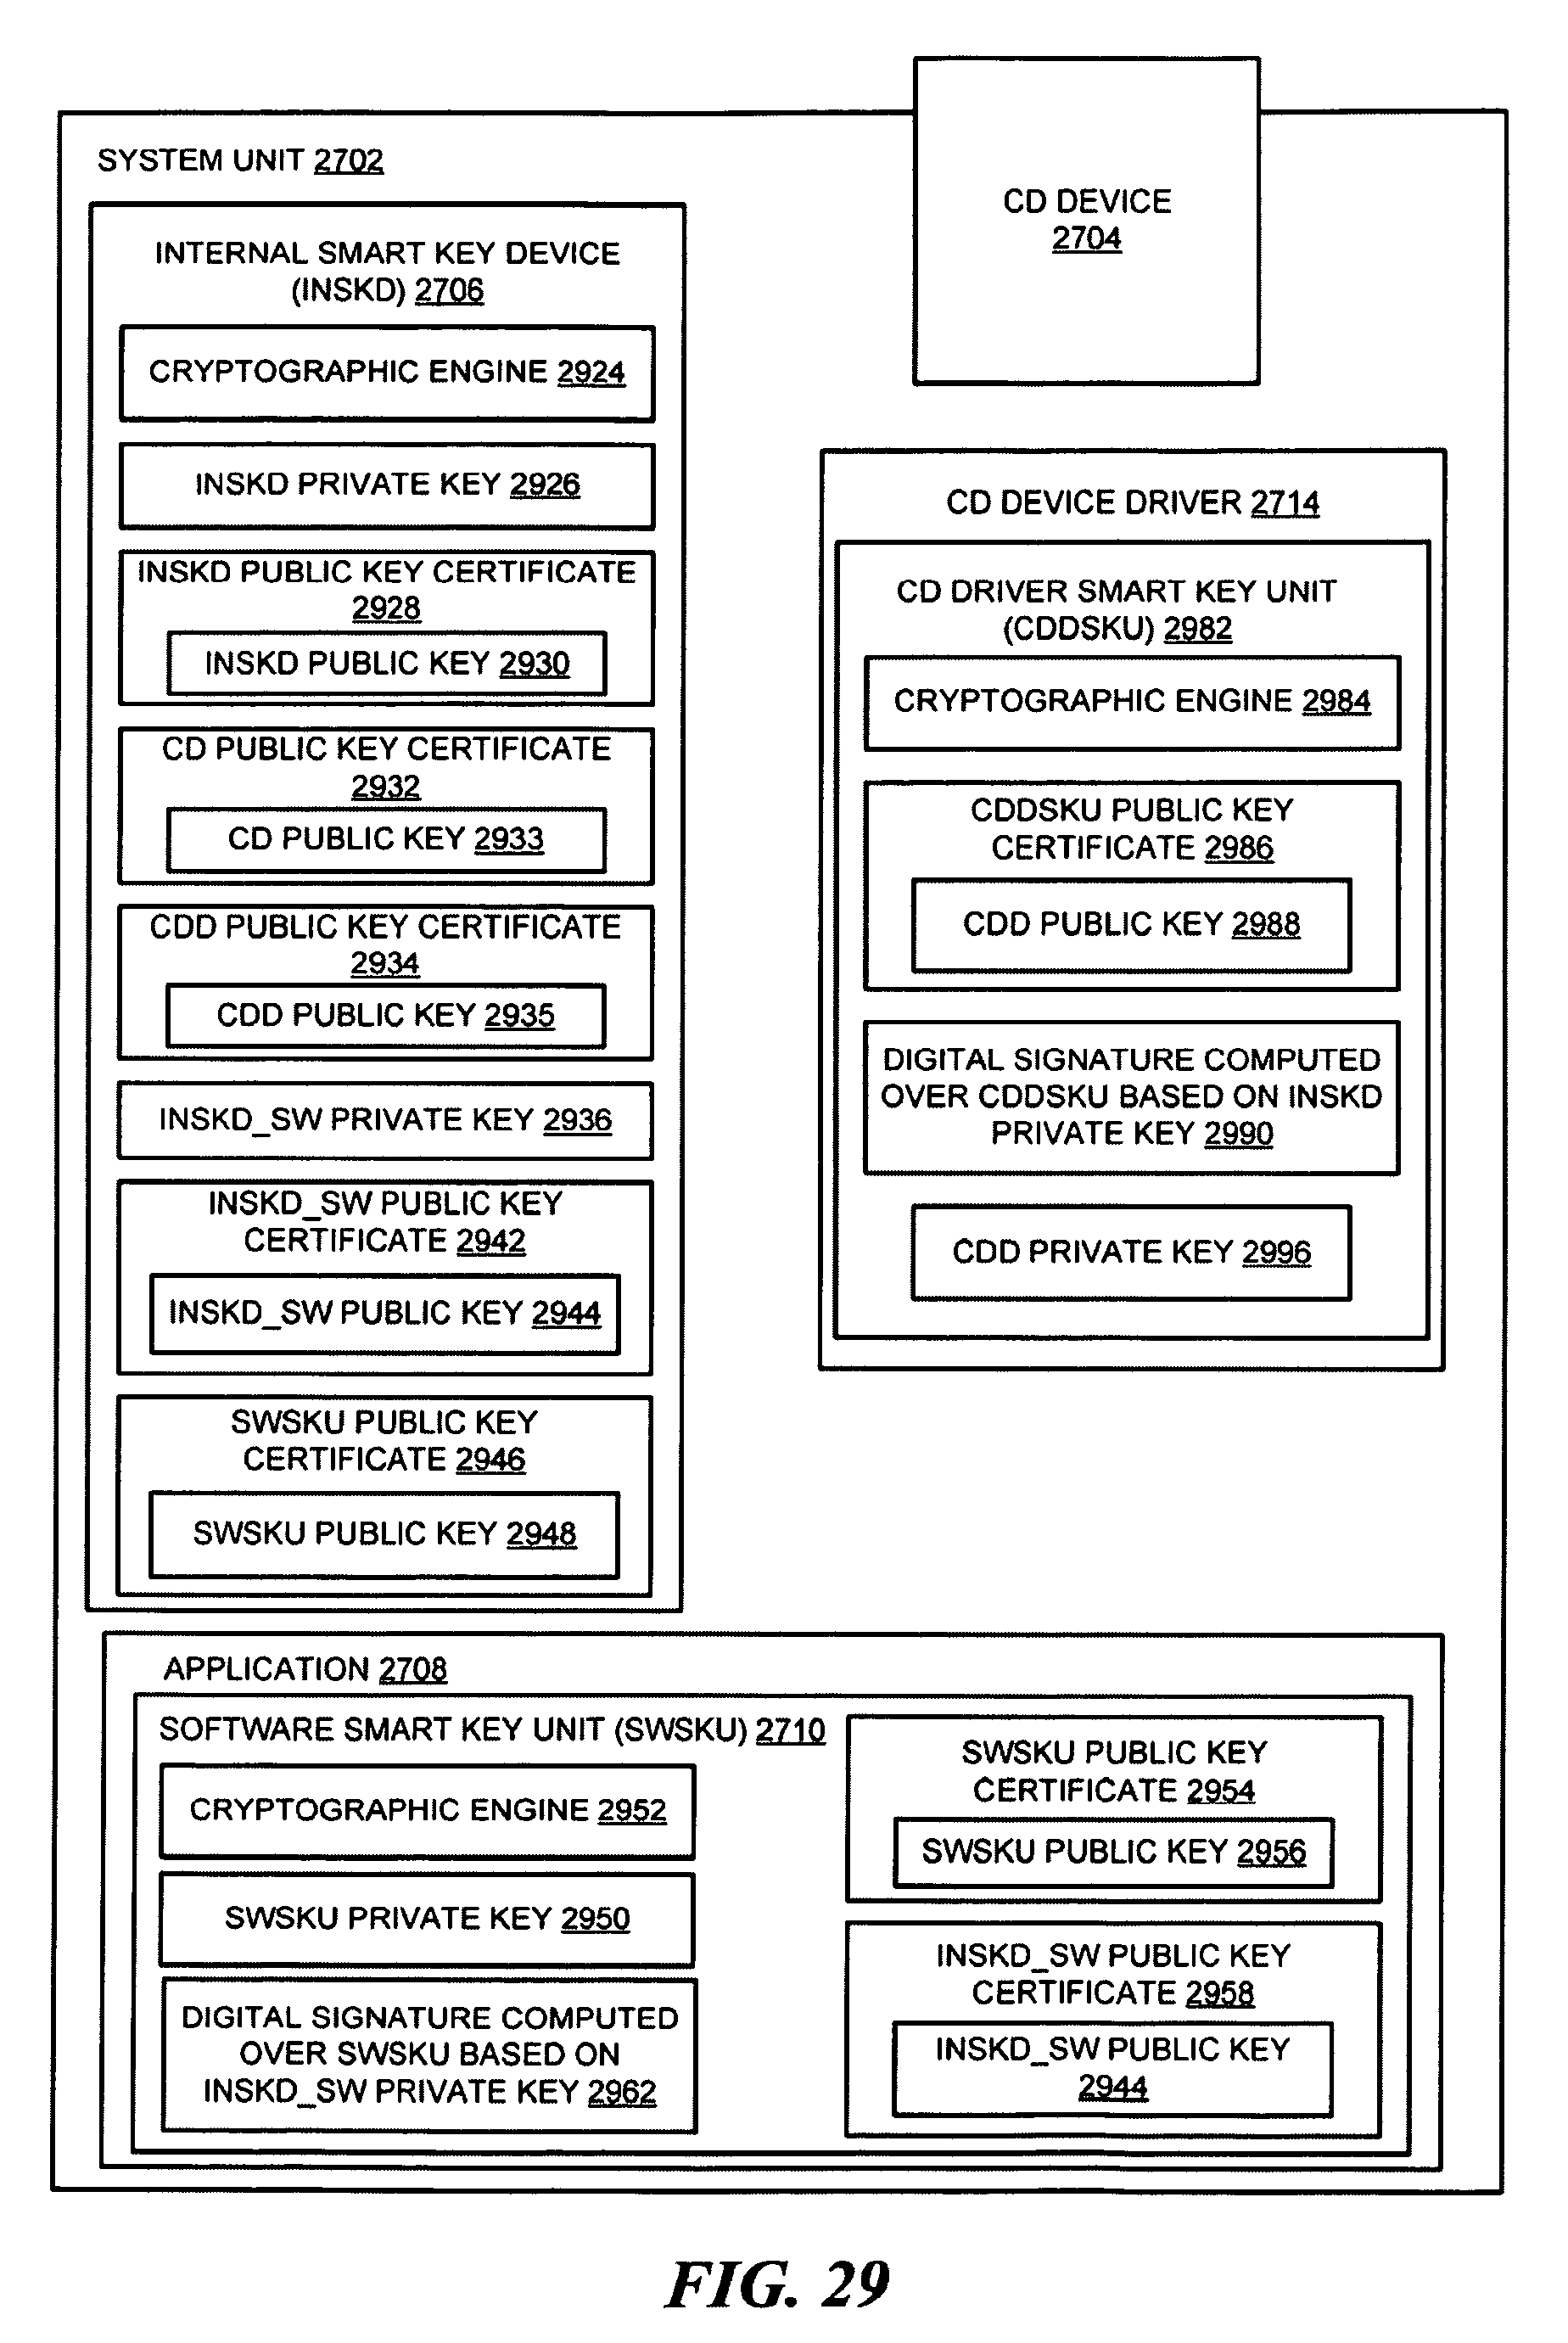 US7908492B2 - Method for using a compact disk as a smart key device